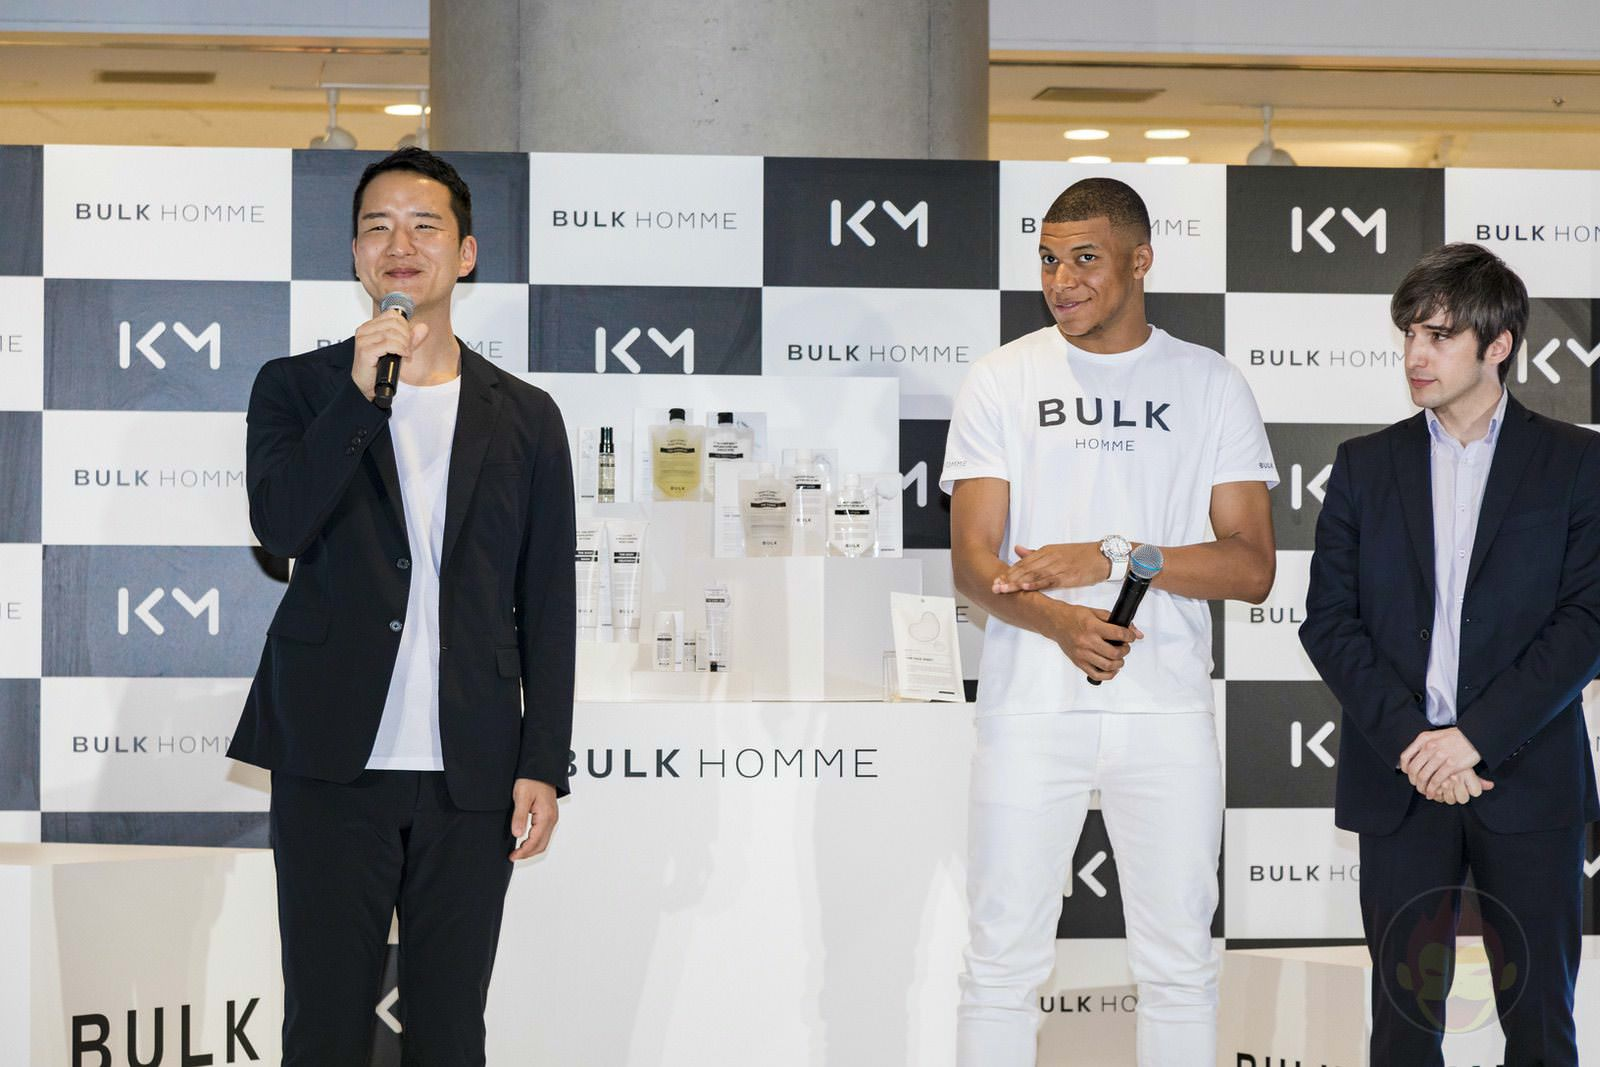 BULK-HOMME-Pop-Up-Store-17.jpg